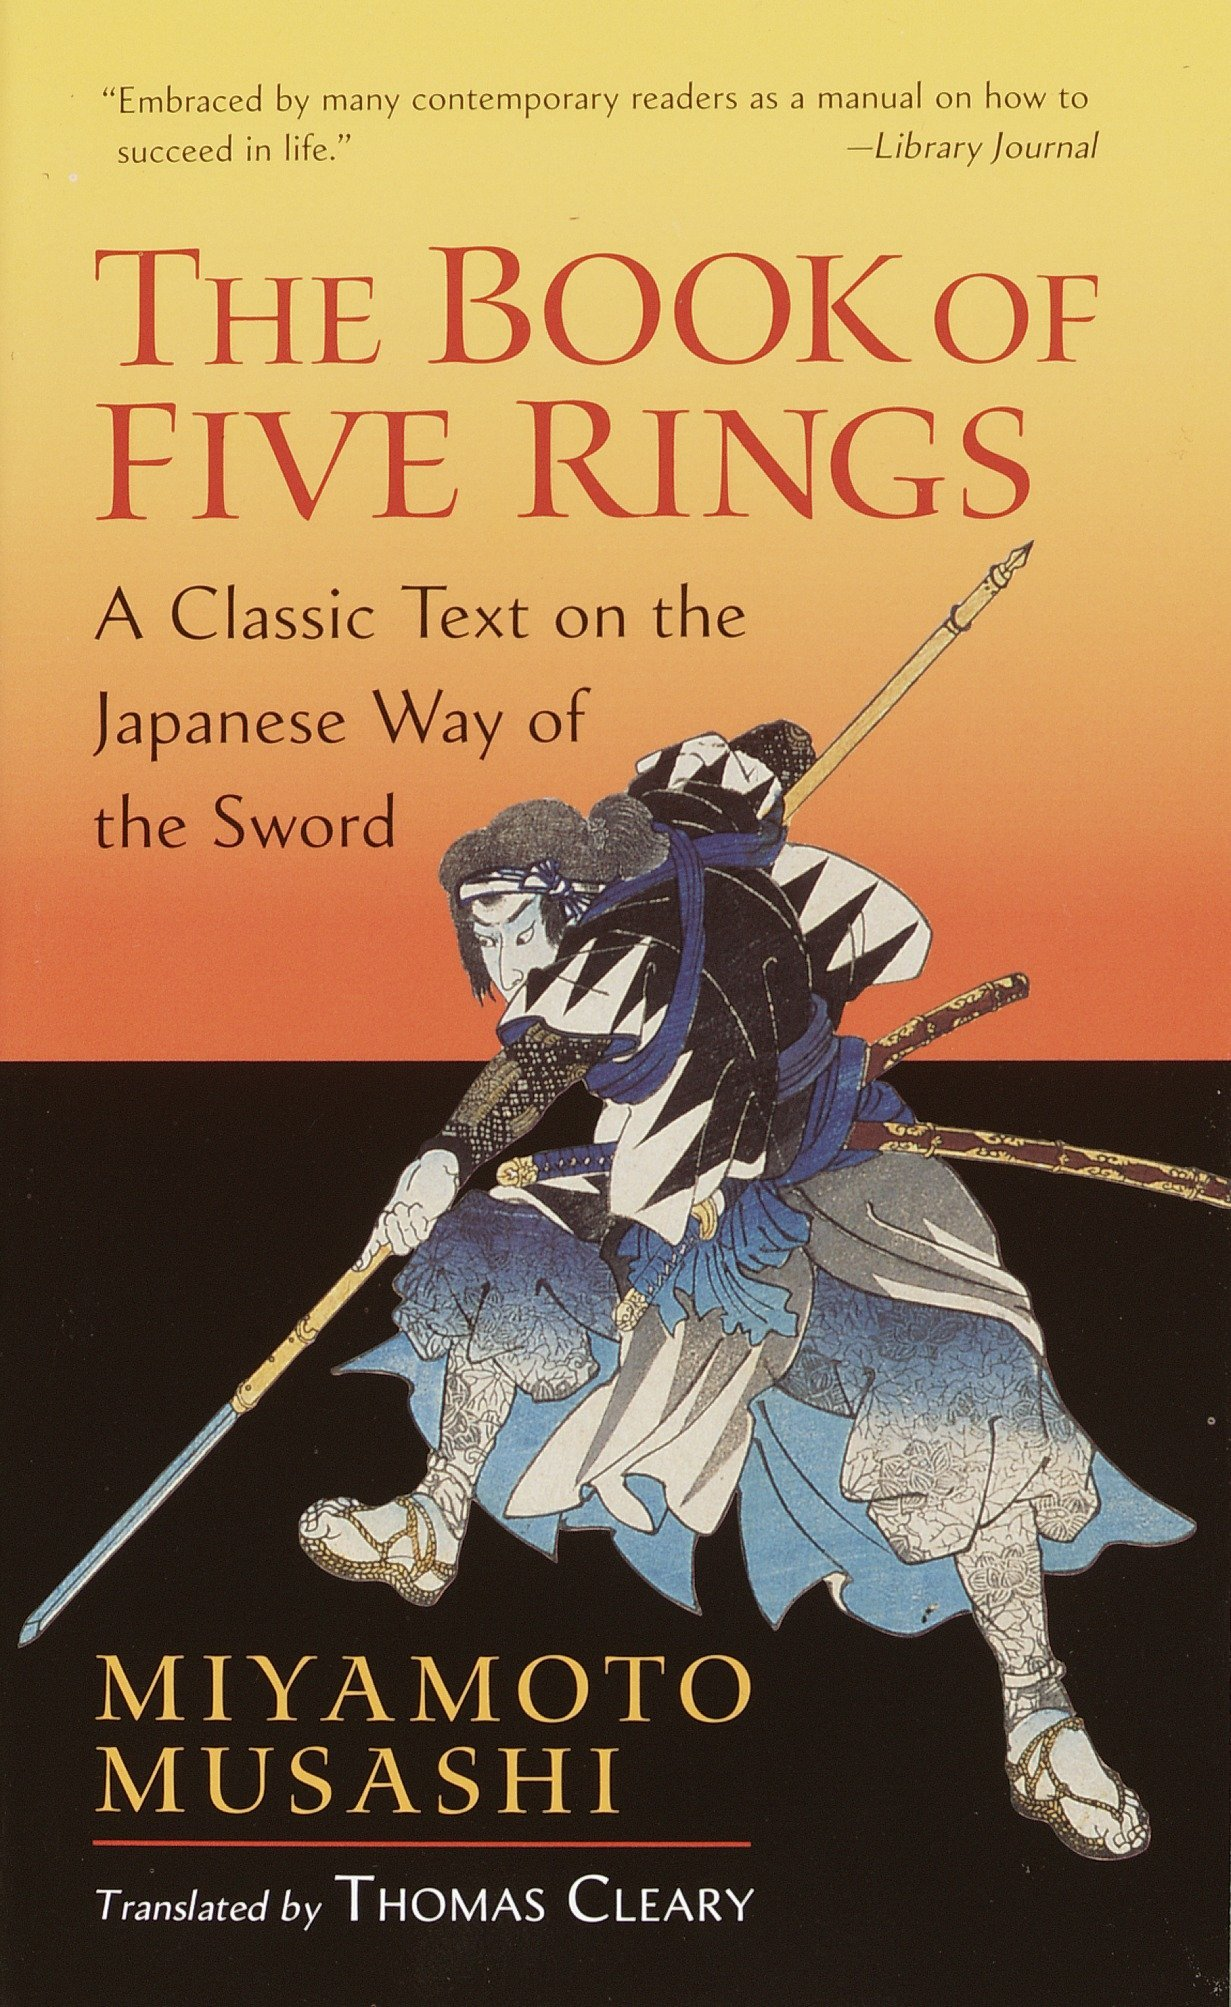 The Book of Five Rings: A Classic Text on the